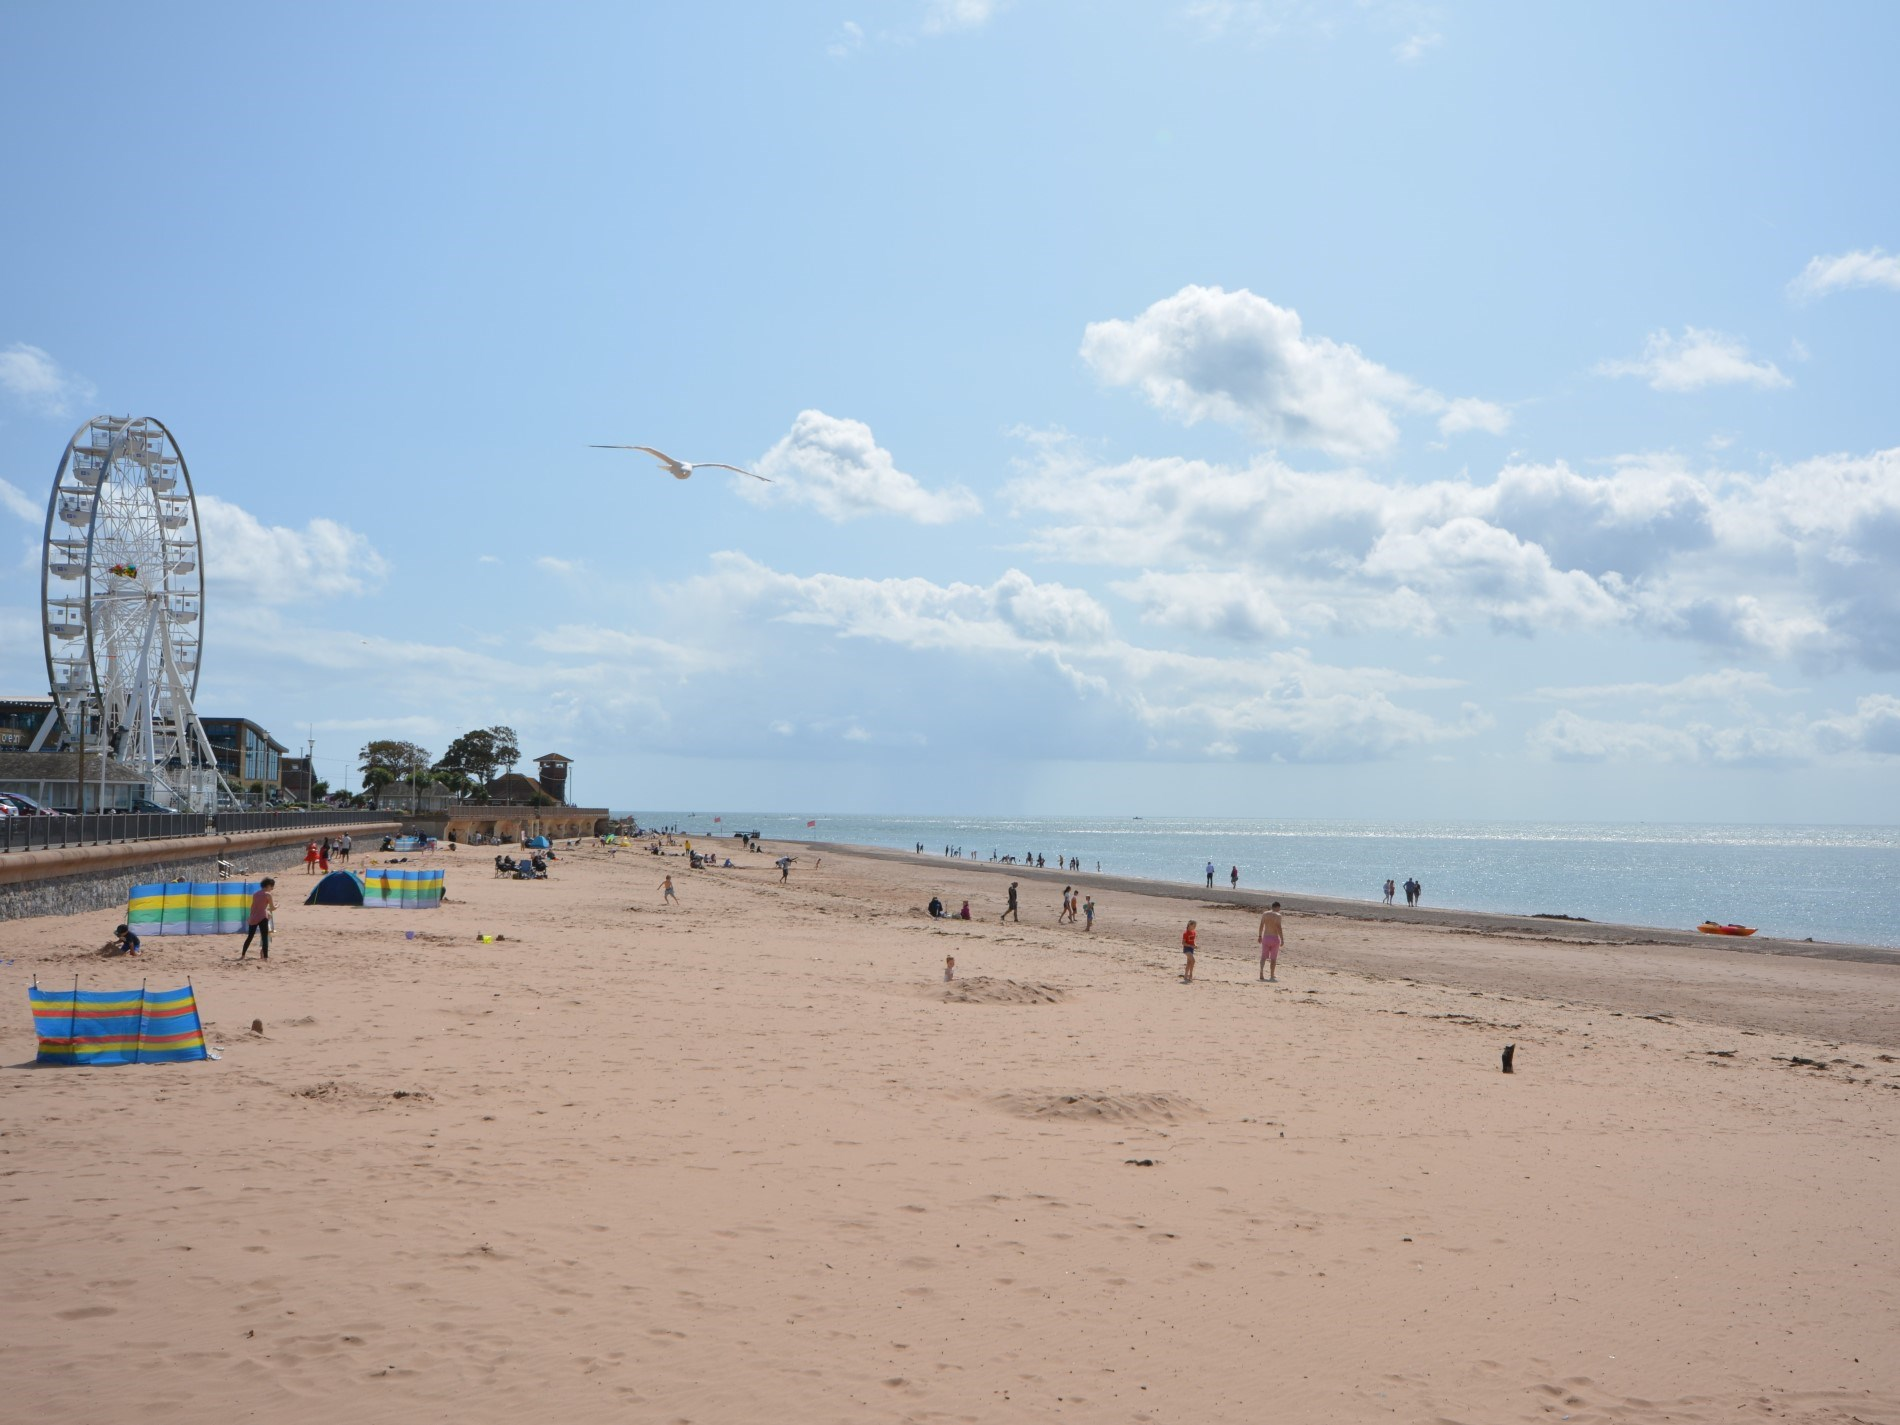 Spend a day on the beach, Exmouth approximately half an hour away